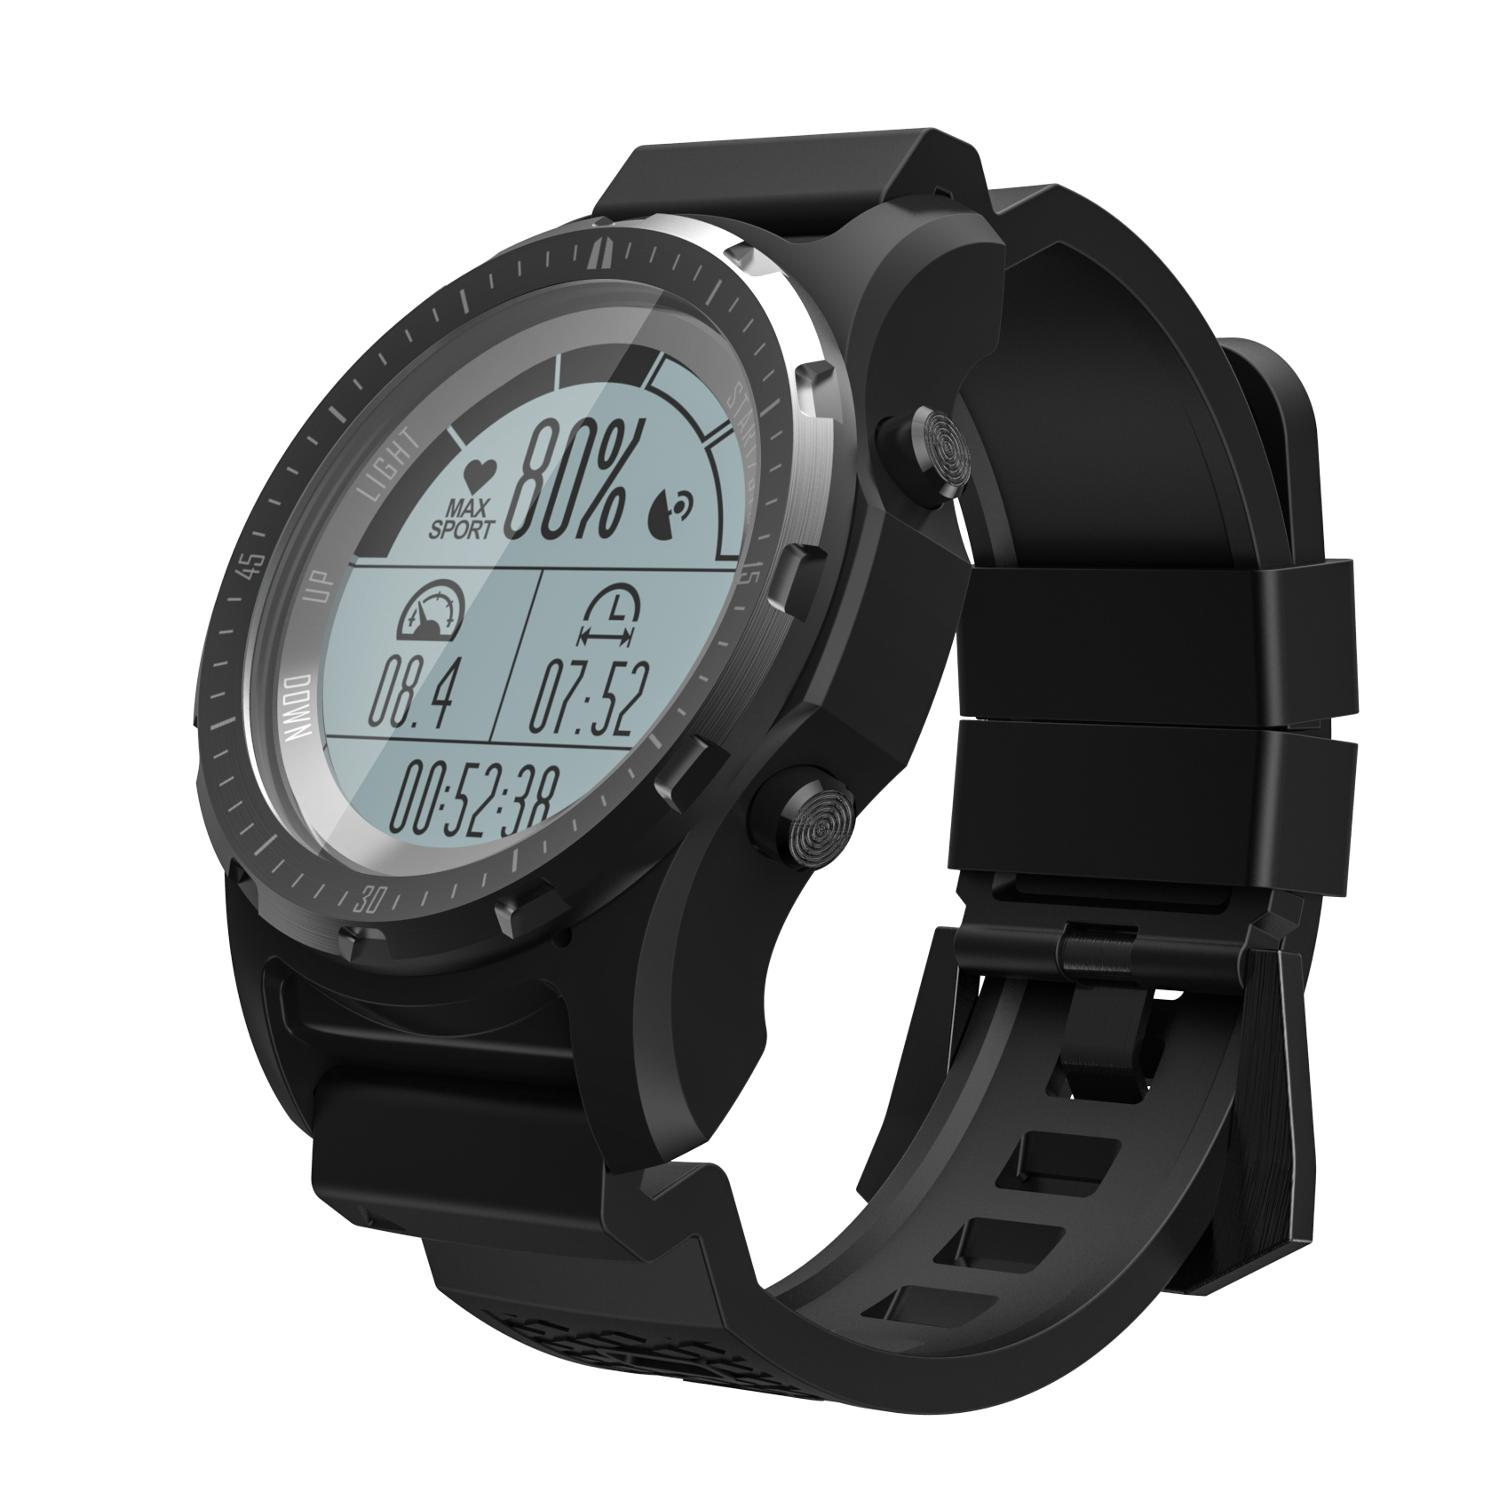 Imosi Smart Watch PK S928 Support G-sensor GPS Notification Sport Mode Wristwatch Smart phone for Android ios S966